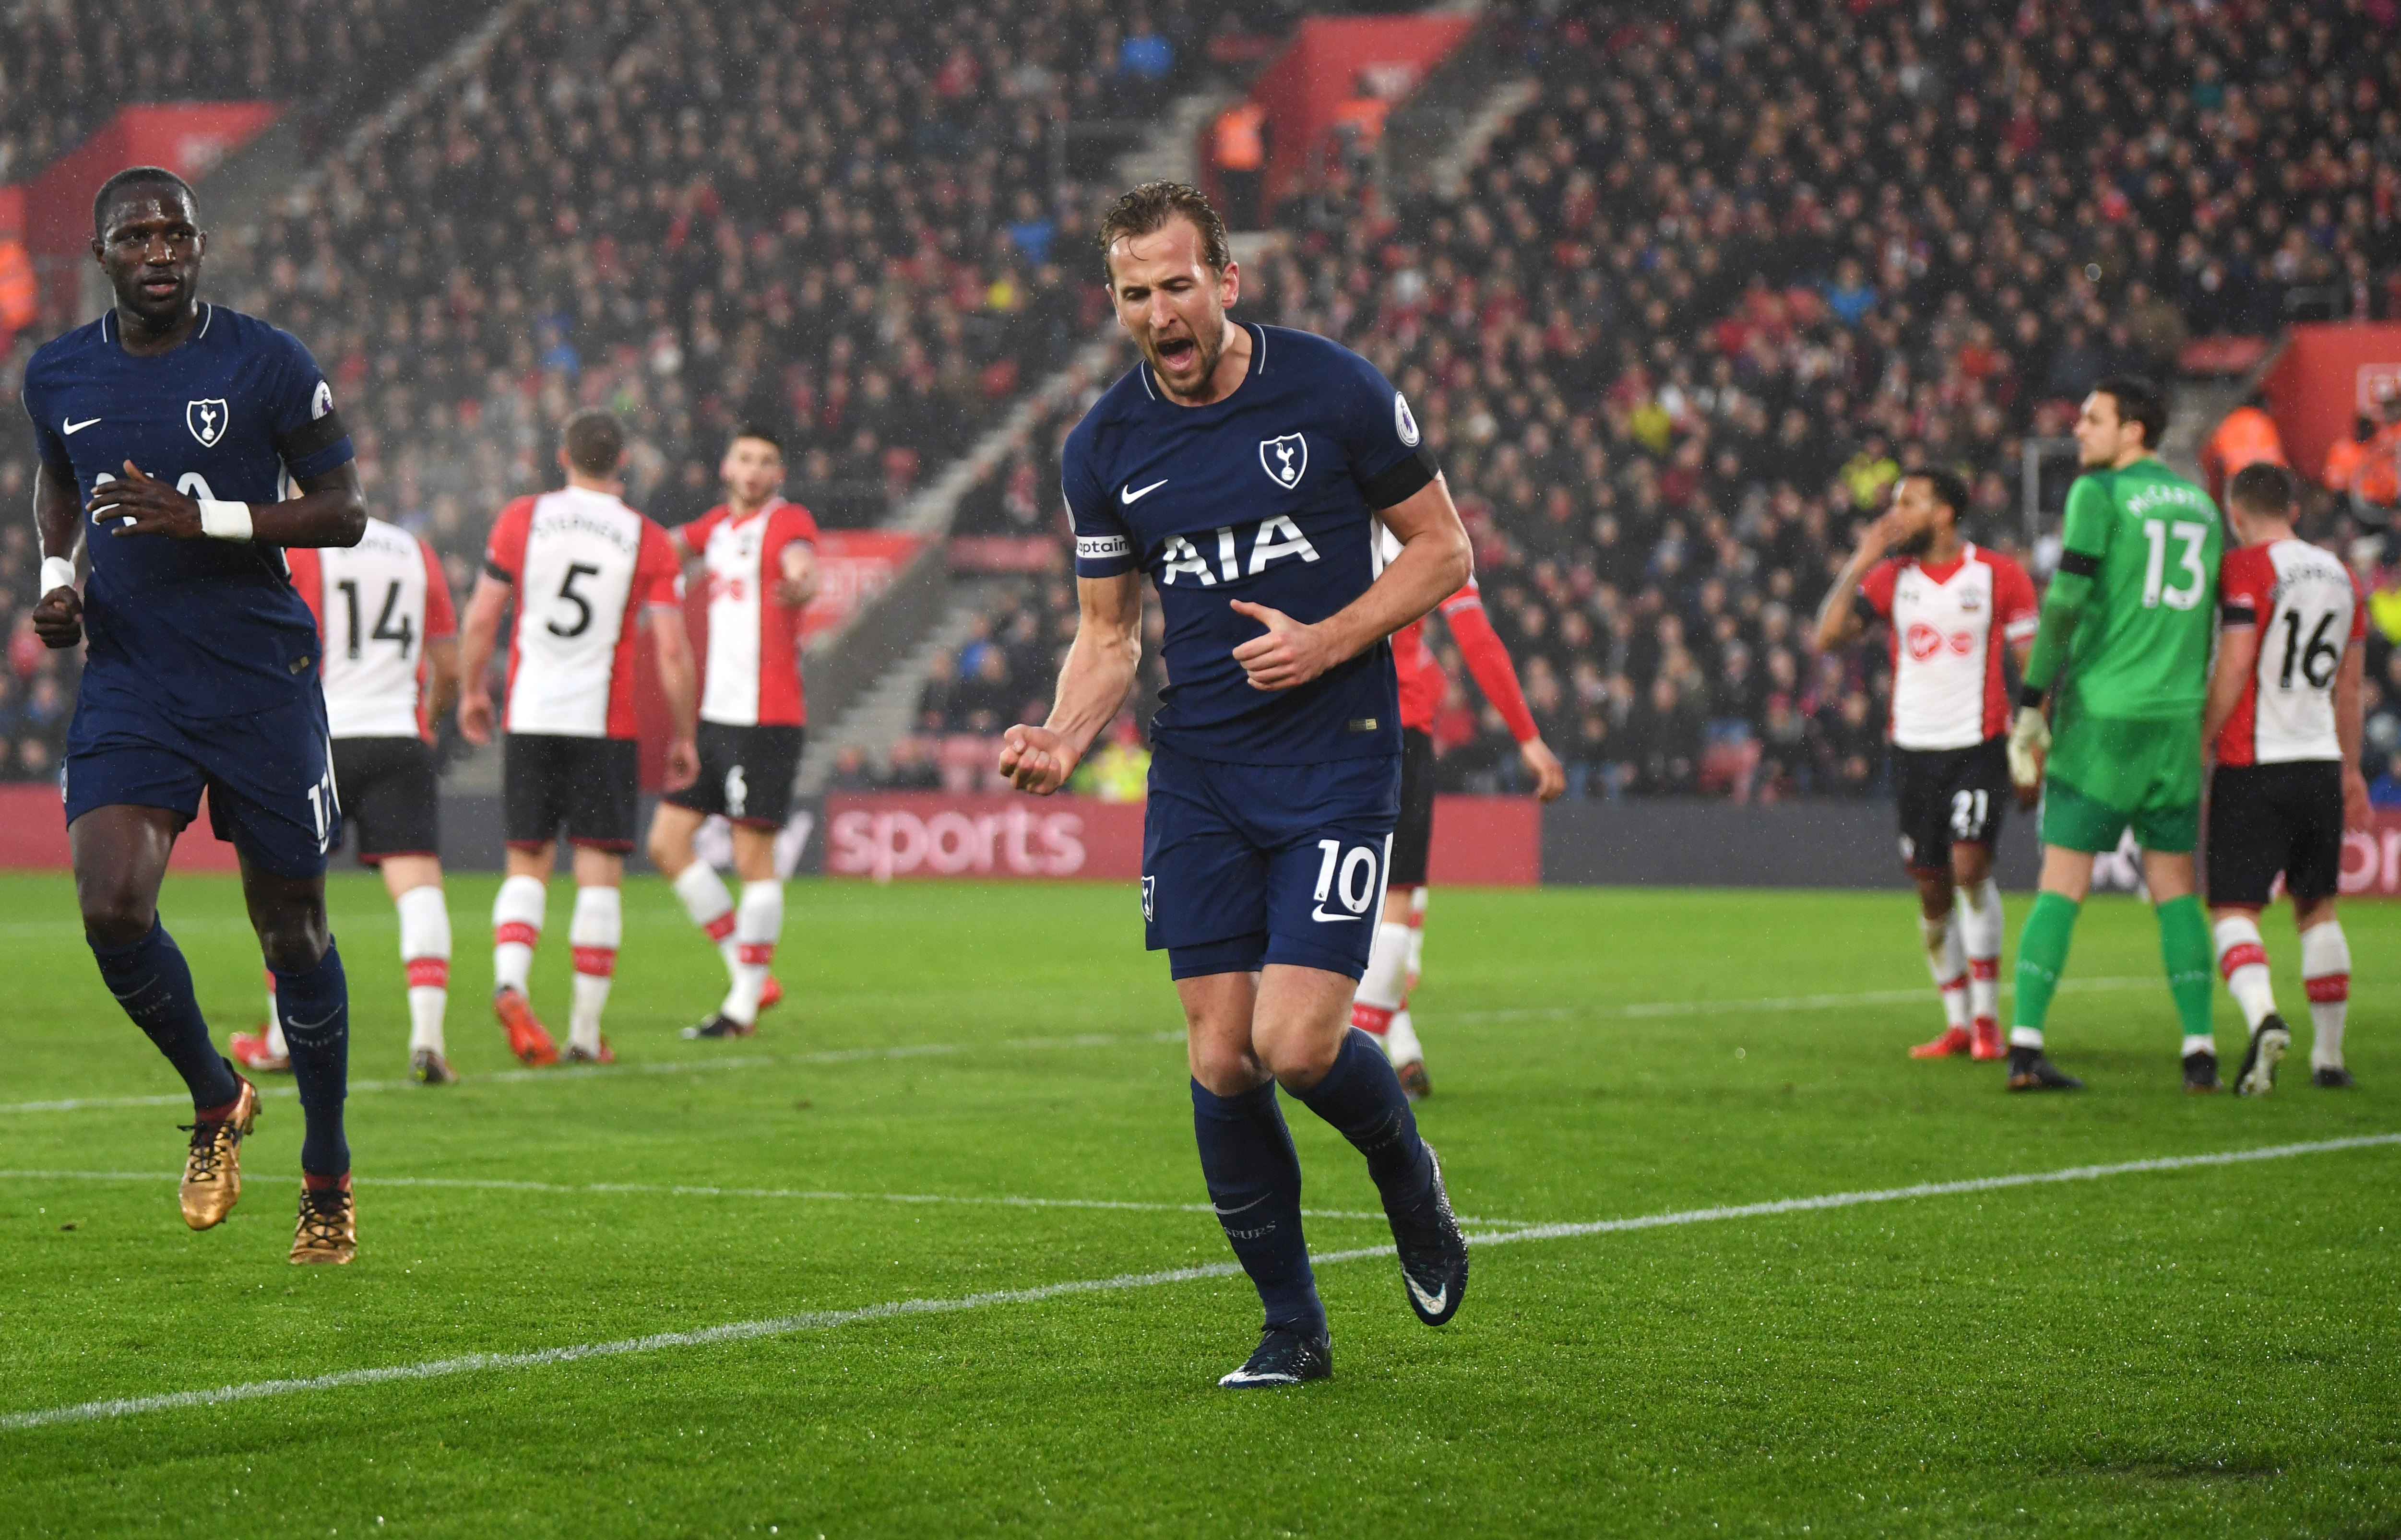 Southampton 1-1 Tottenham: Spurs stars rated and slated